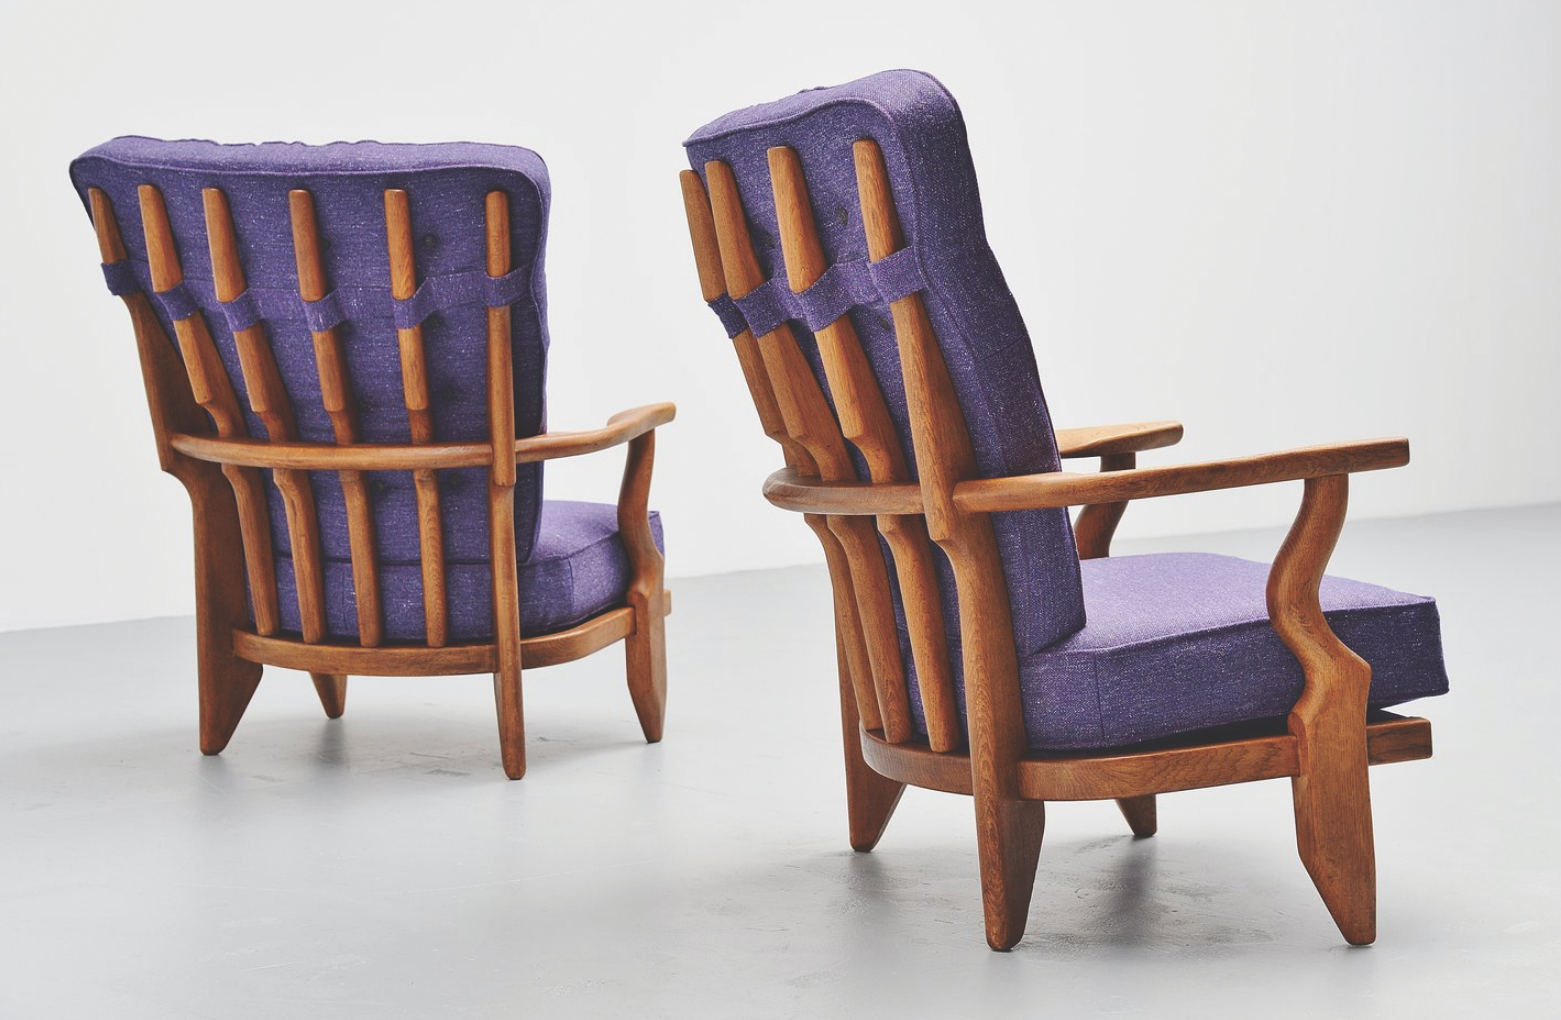 Pair of lounge chairs from1955, with a solid oak ribcage frame. Newly upholstered to match the original design. Price: 4,500 euros  www.massmoderndesign.com